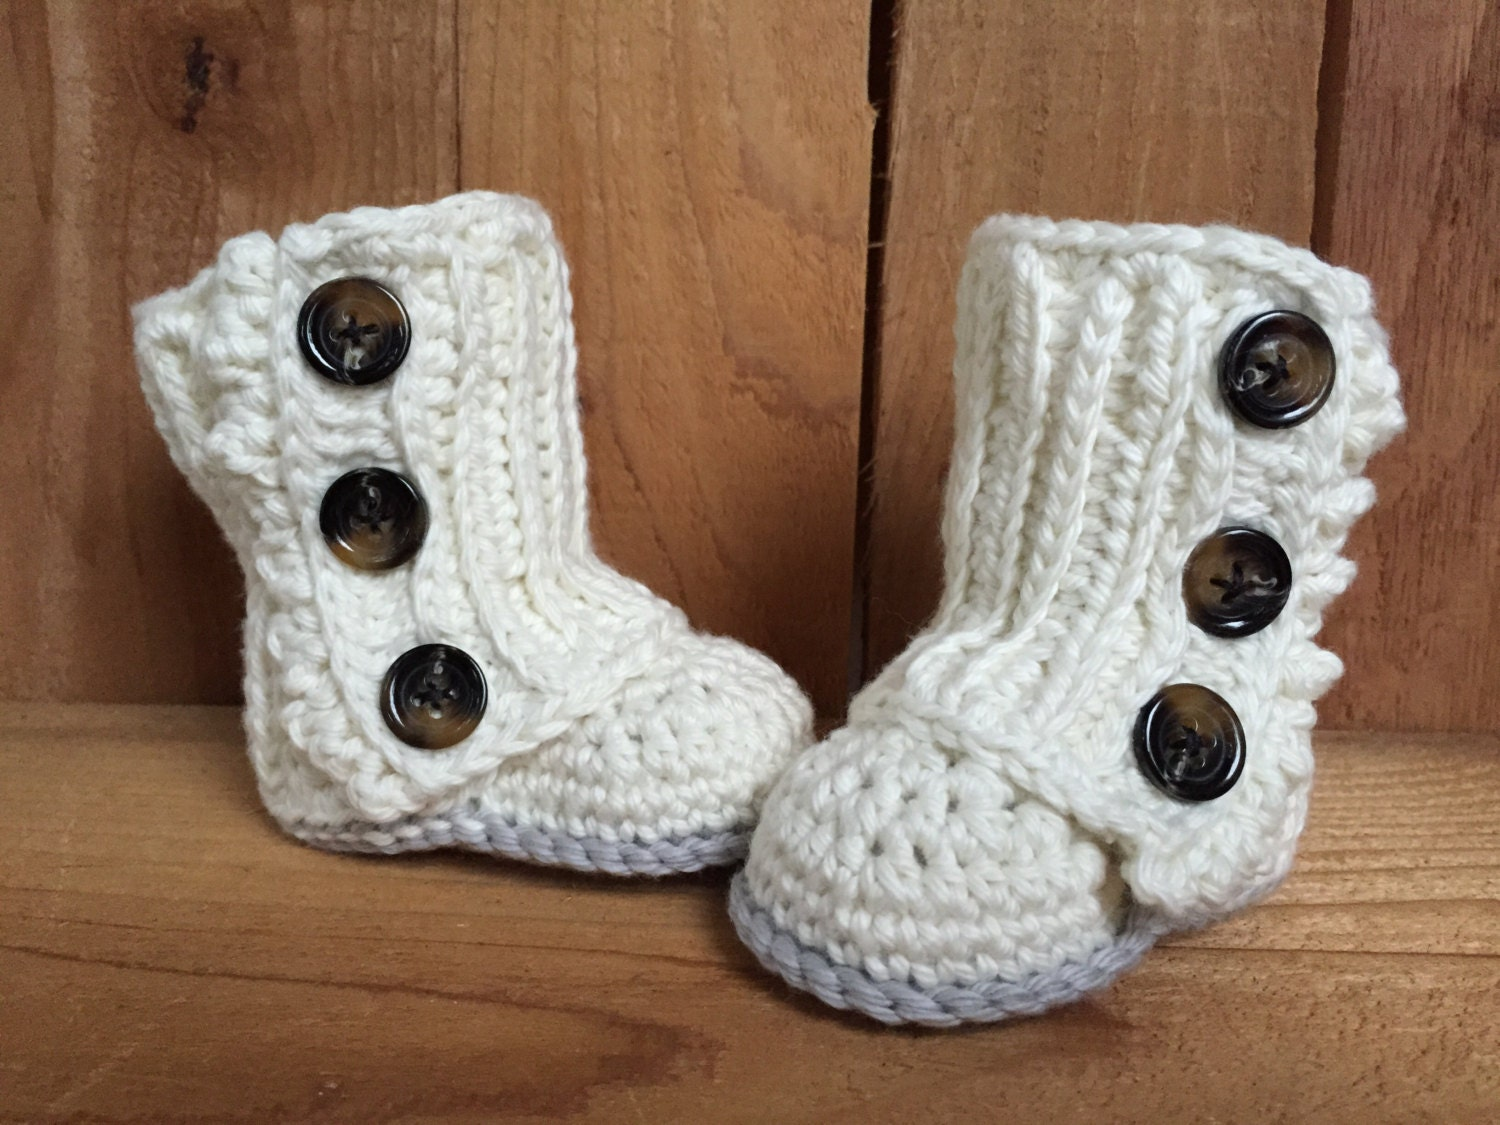 Crochet Wrap Around Button Baby Boots Pattern : Crocheted baby wrap boots baby boots baby wrap boots baby